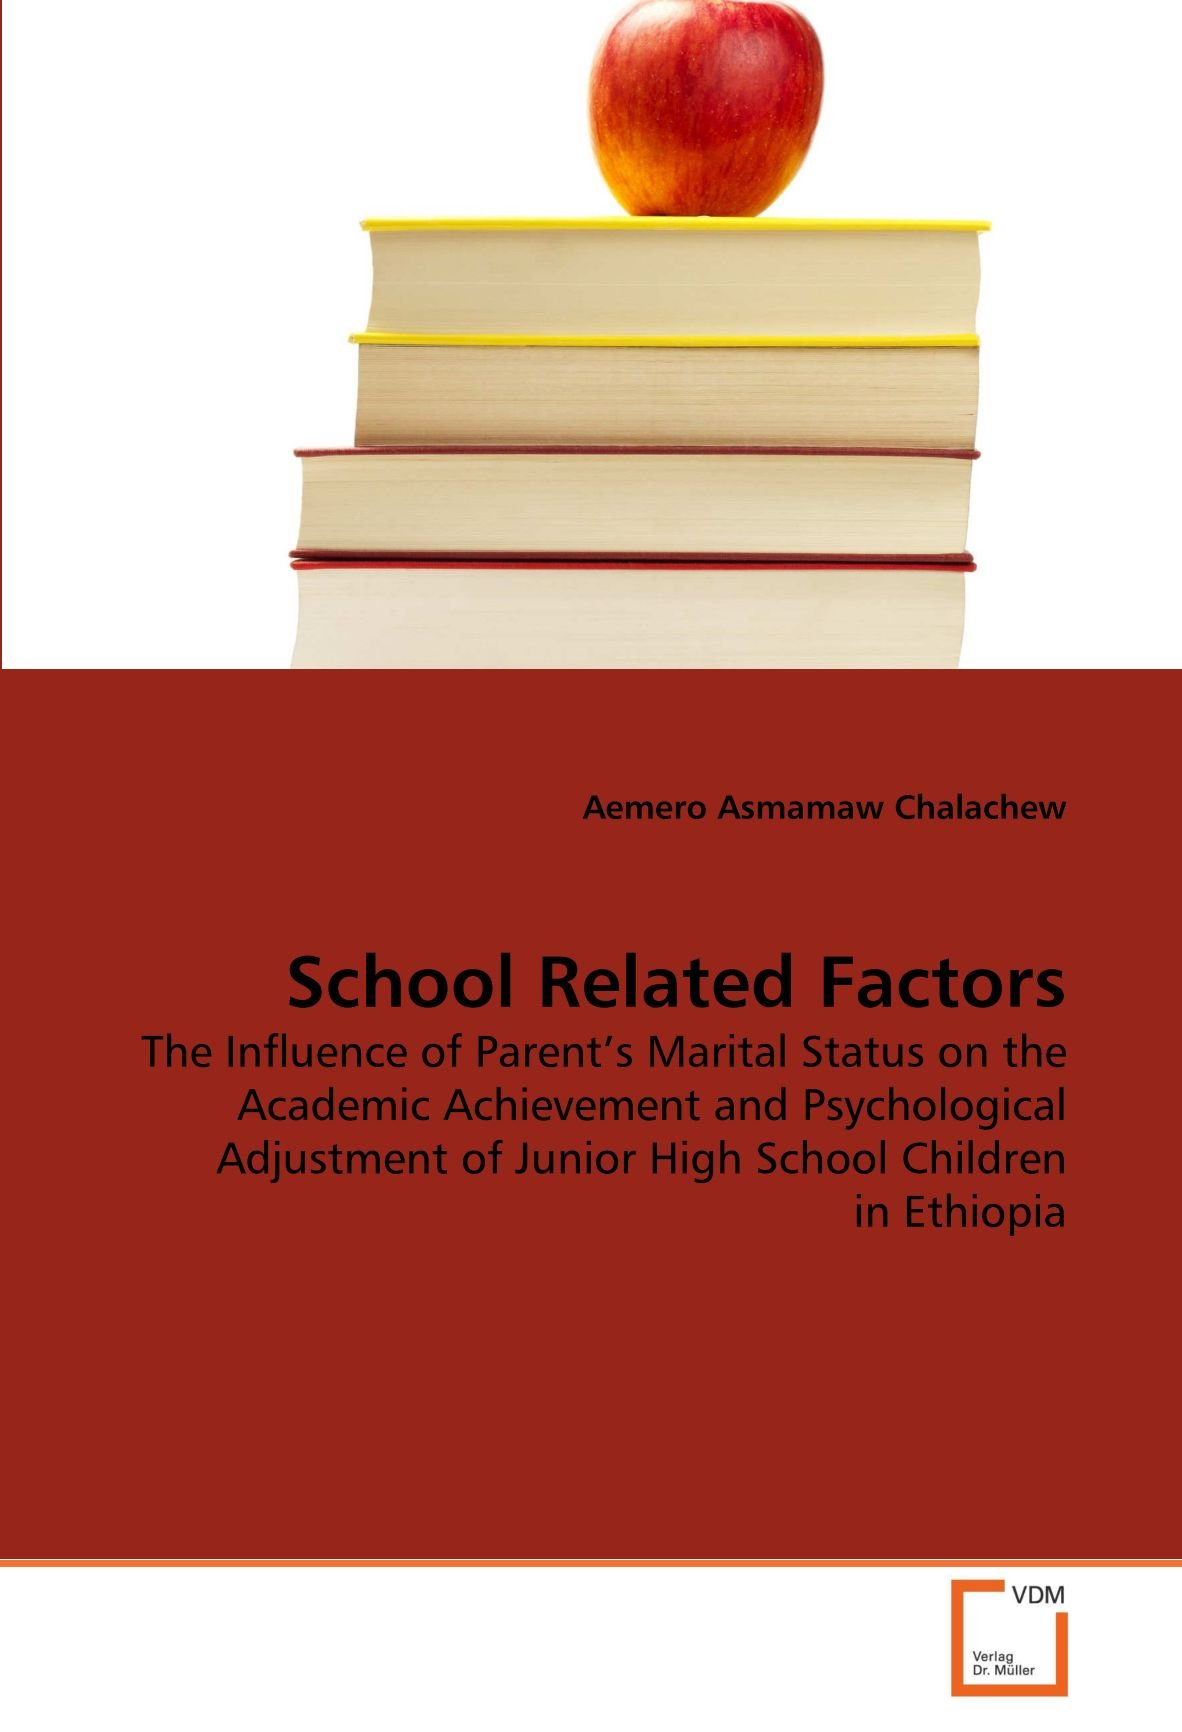 Read Online School Related Factors: The Influence of Parent's Marital Status on the Academic Achievement and Psychological Adjustment of Junior High School Children in Ethiopia PDF